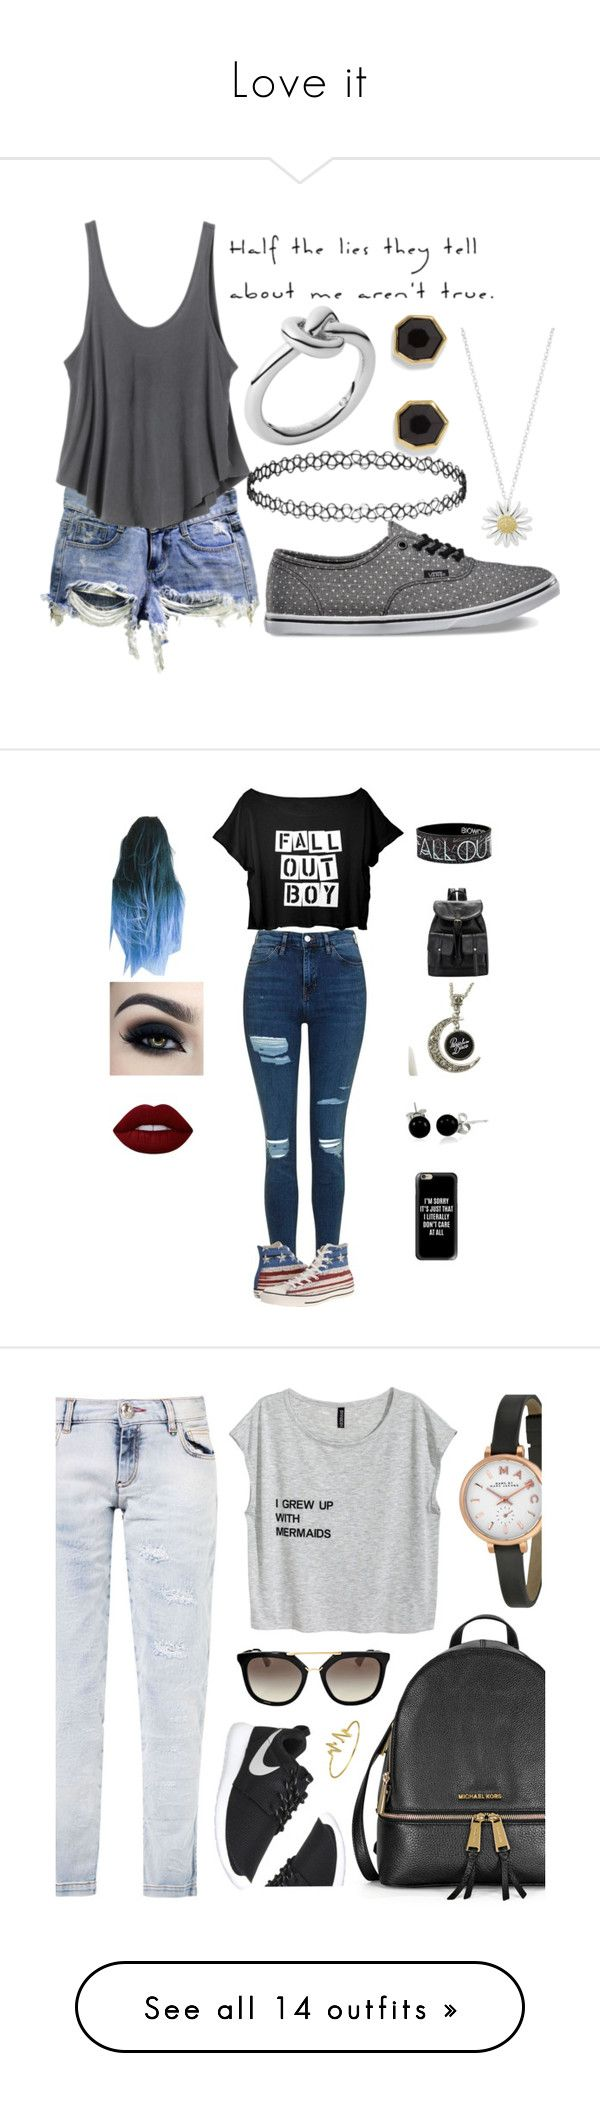 """""""Love it"""" by panda-stilinski-lol-24 ❤ liked on Polyvore featuring RVCA, Vans, Daisy Jewellery, Topshop, Michael Kors, Vince Camuto, Converse, Lime Crime, Bling Jewelry and Casetify"""